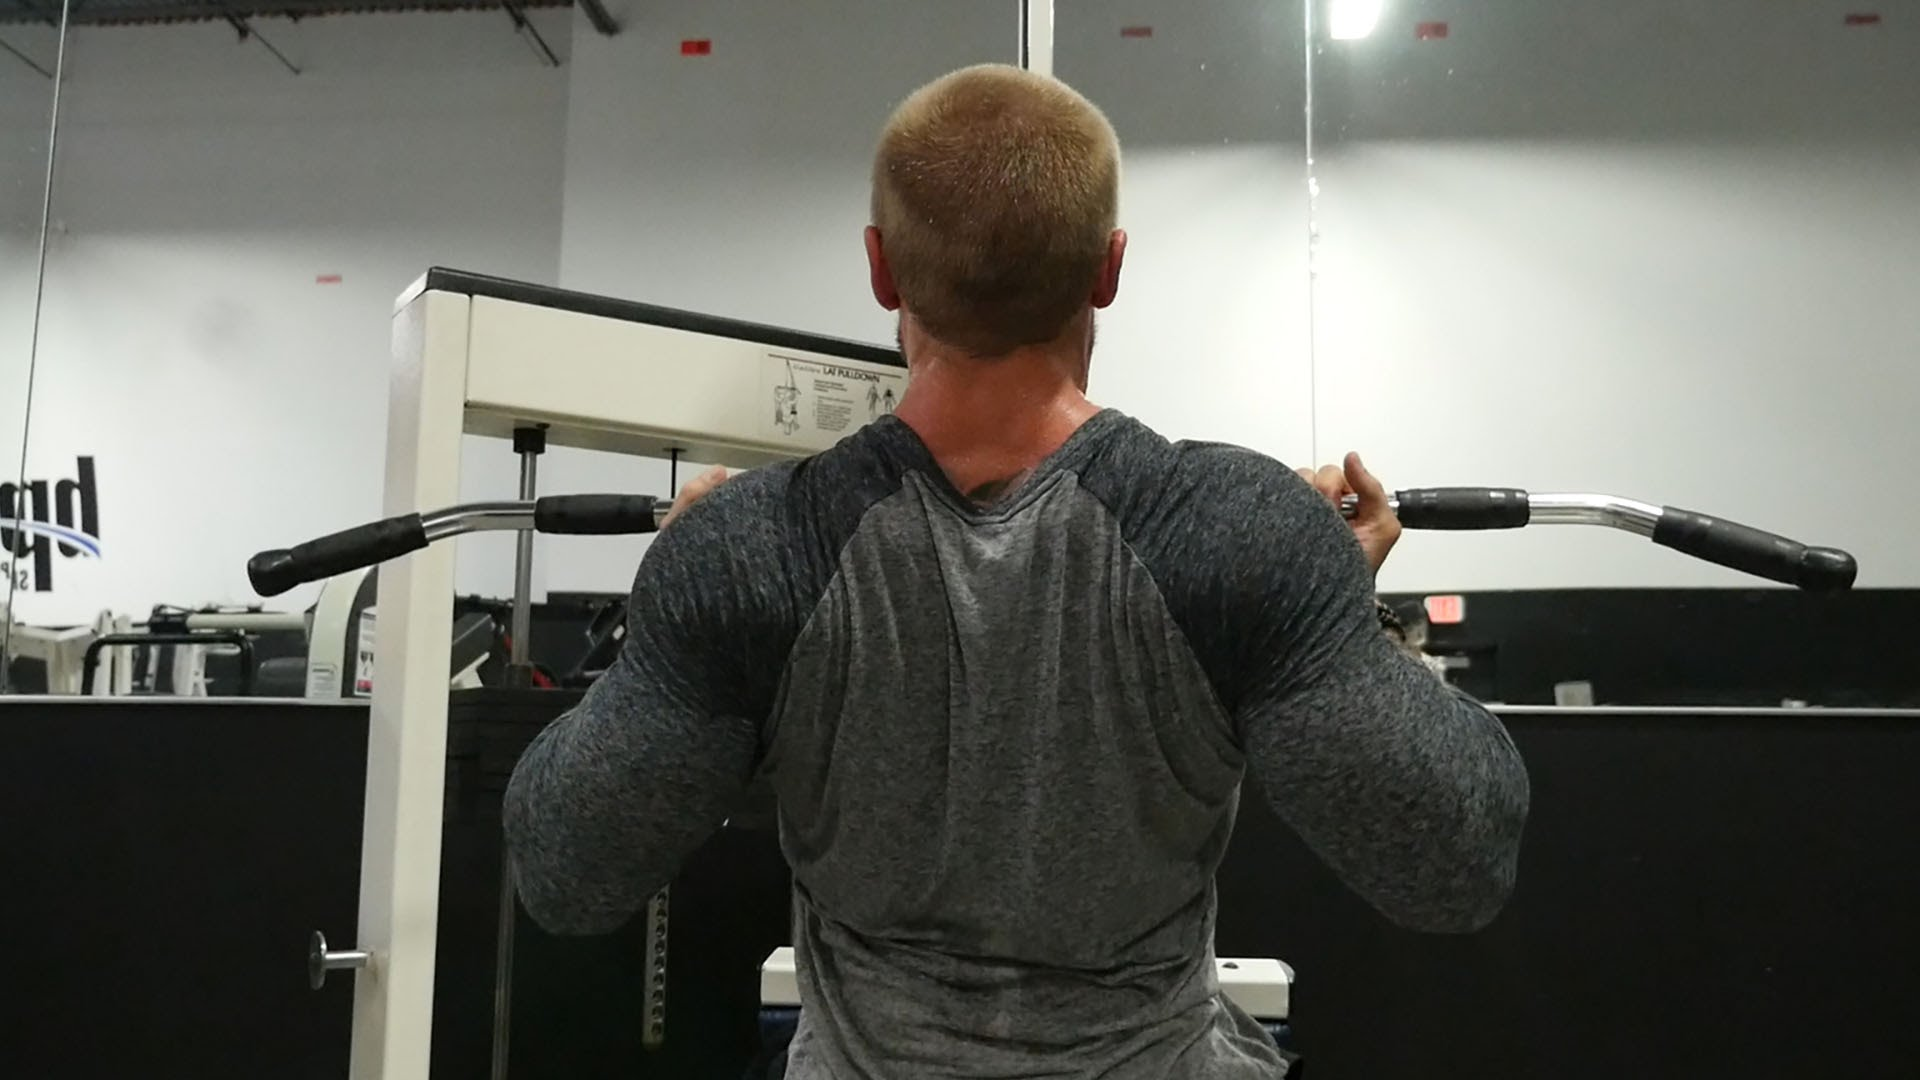 Best-Exercises-to-Build-Your-Lats-How-To-Get-a-Wide-Back